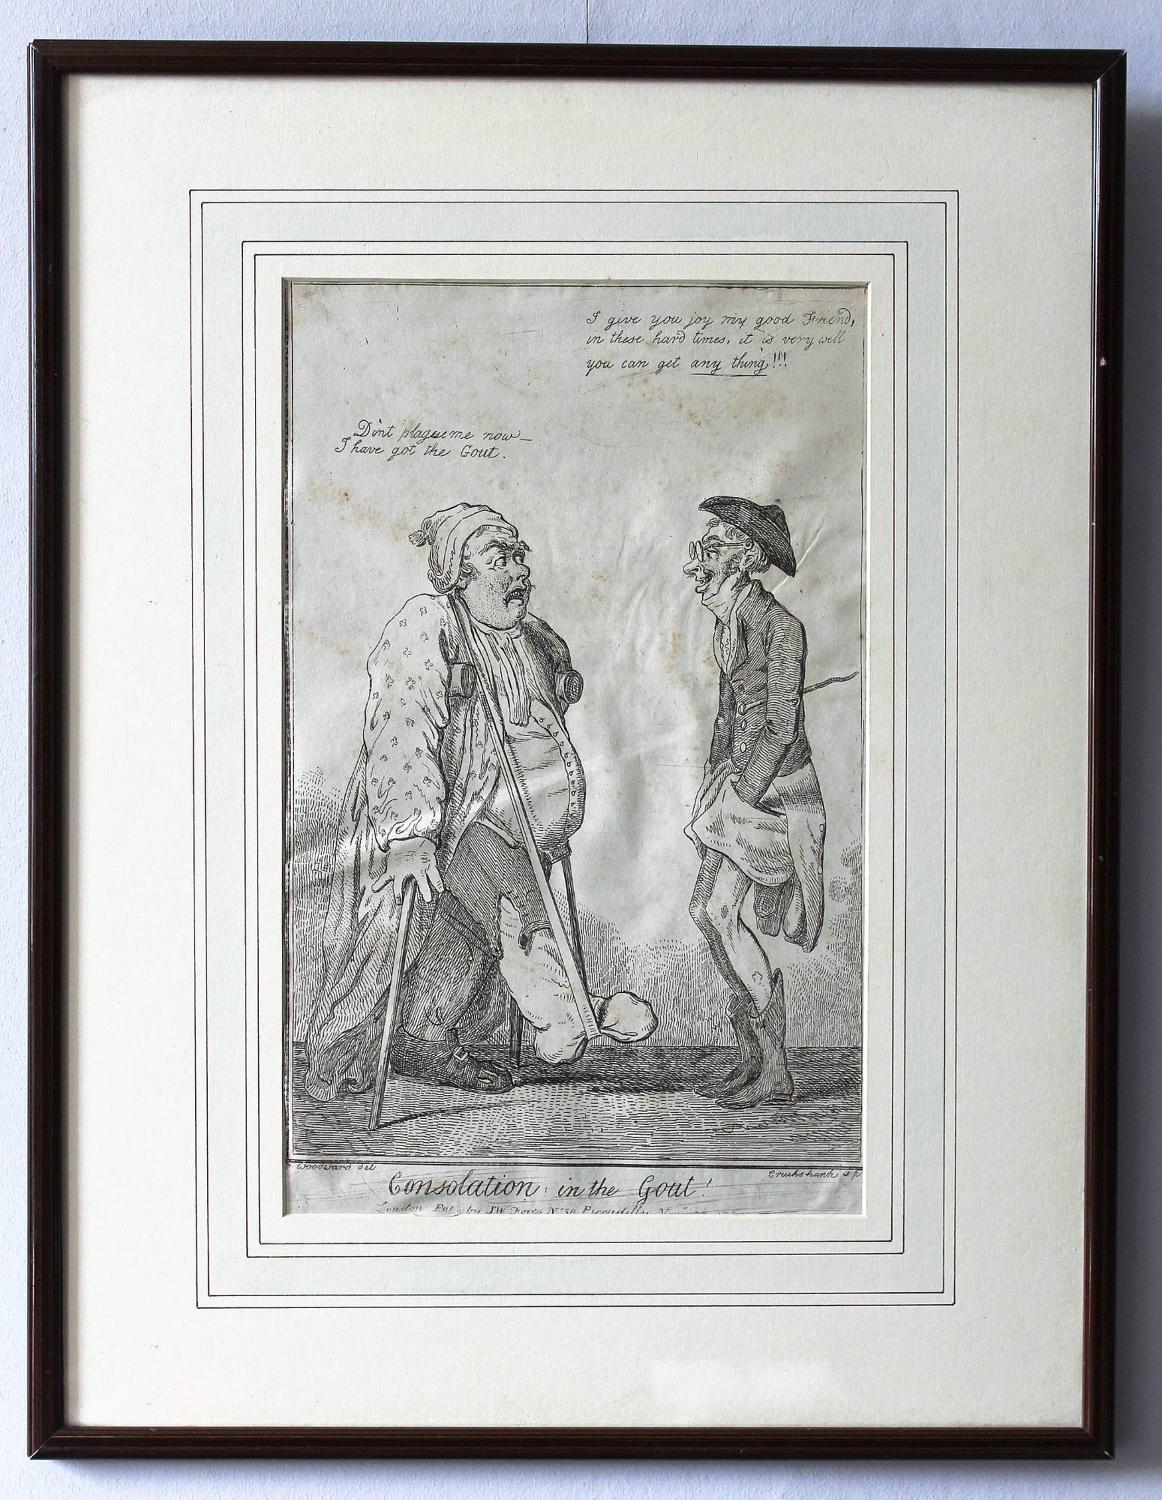 George Cruikshank 'Consolation in the Gout' Engraving 1796